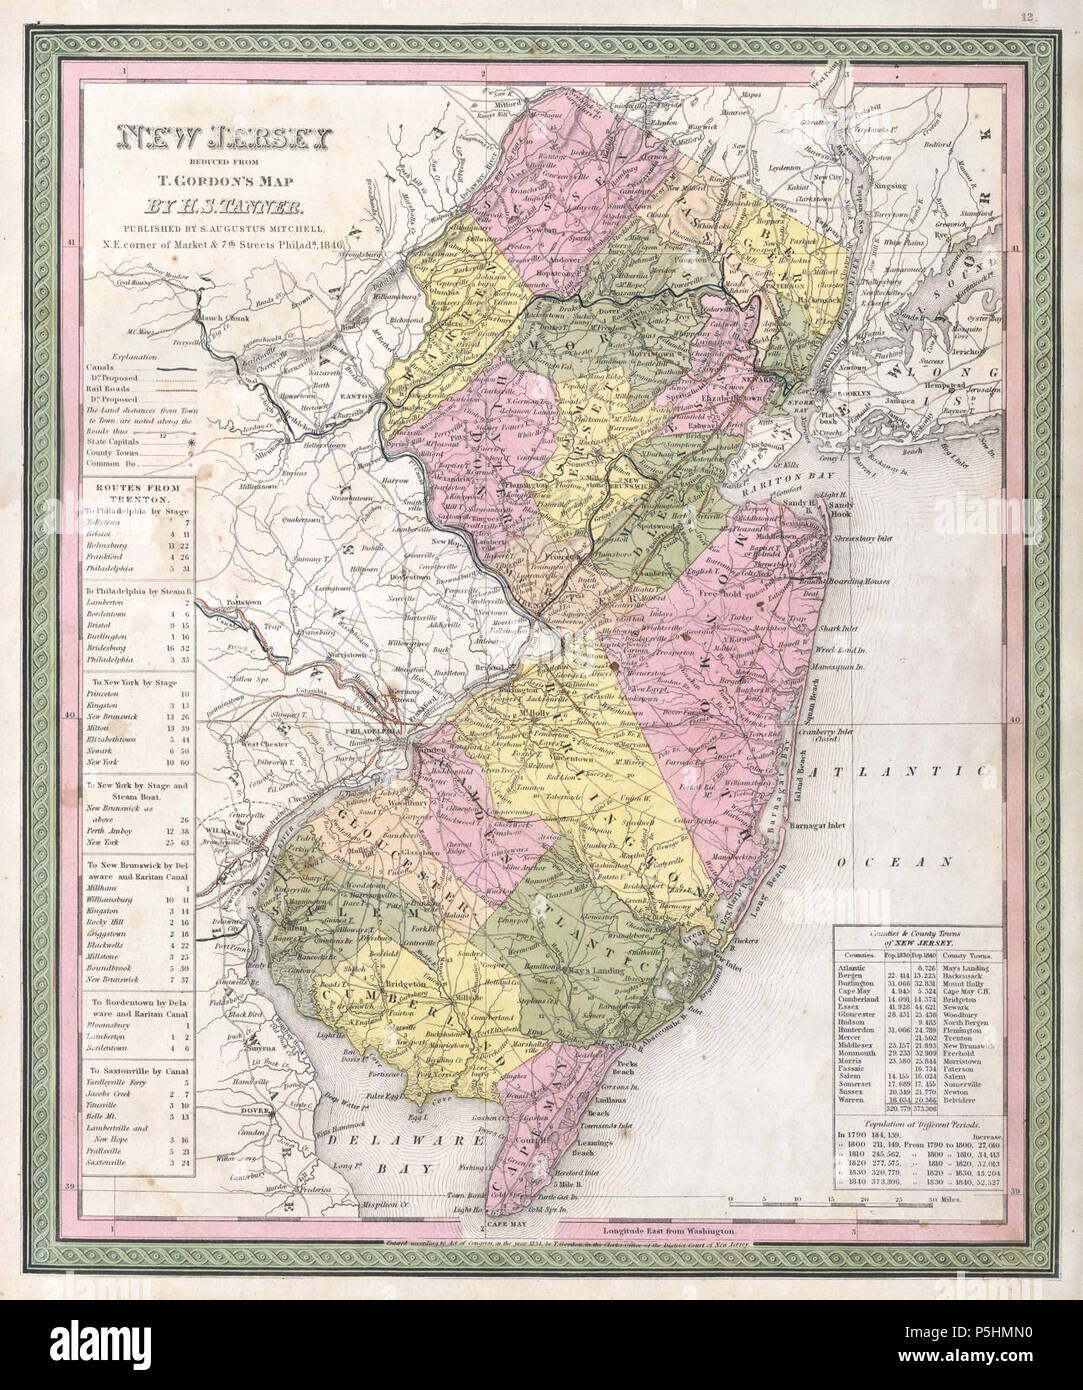 1846 Mitchell - Tanner Map of New Jersey - Geographicus - NewJersey-mitchell-1848. - Stock Image